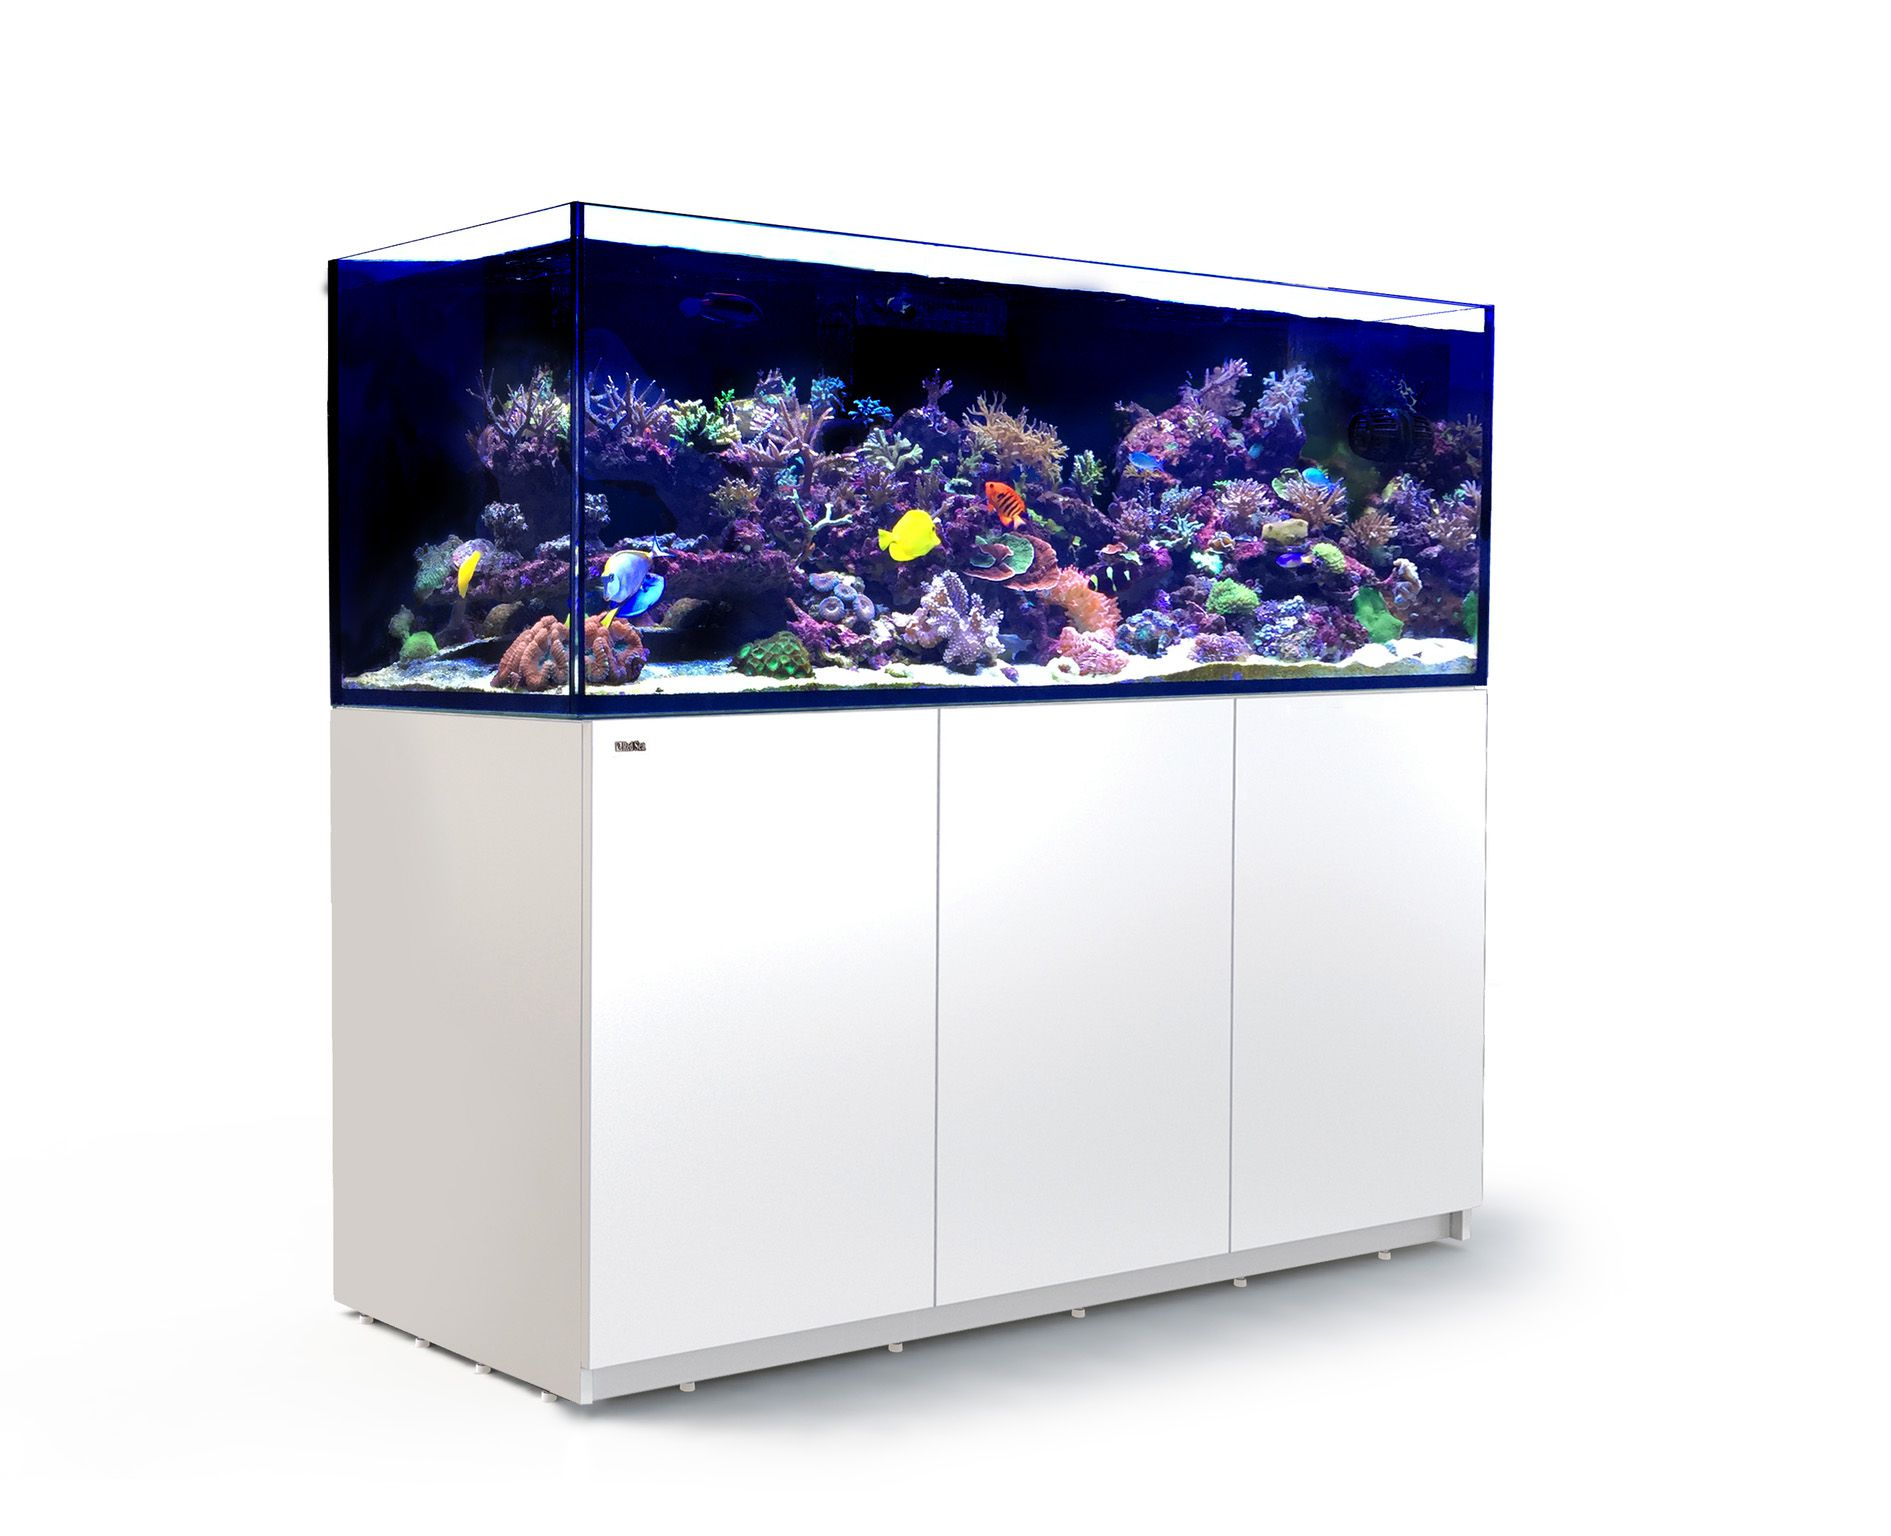 meerwasseraquarium kaufen online shop meerwasser hardware. Black Bedroom Furniture Sets. Home Design Ideas